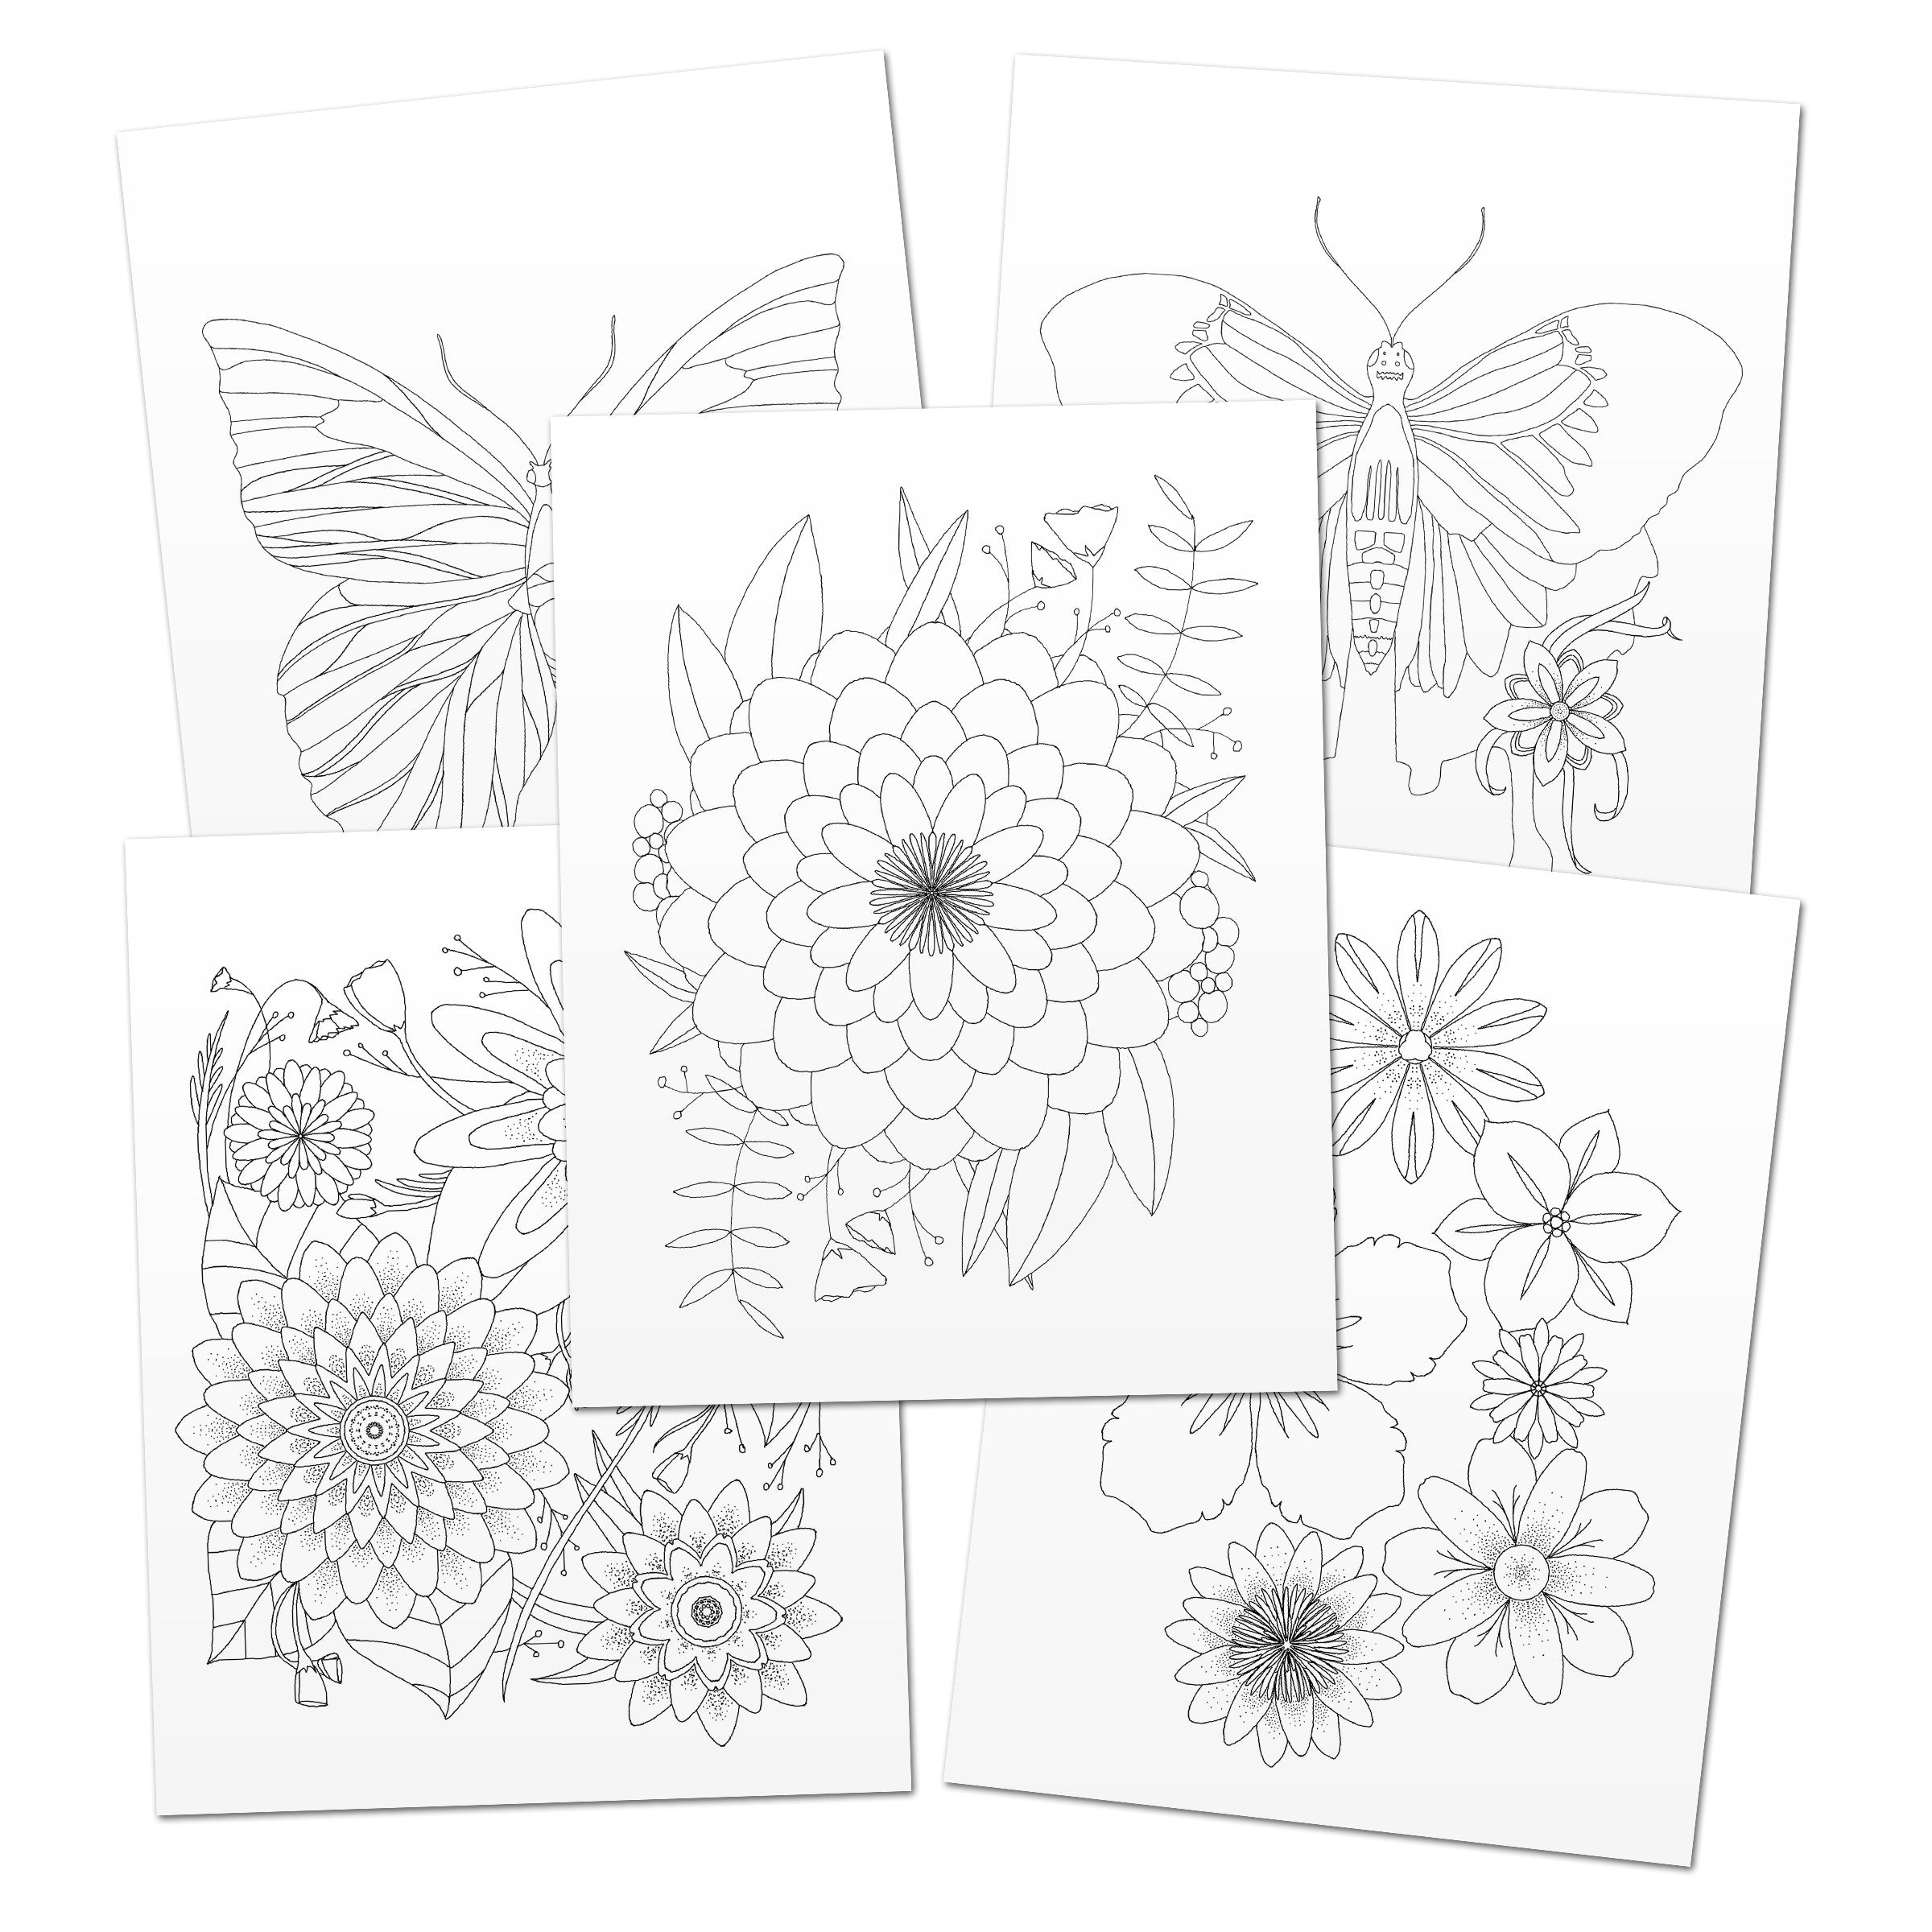 Monthly Adult Coloring Pages Club Printable Haven